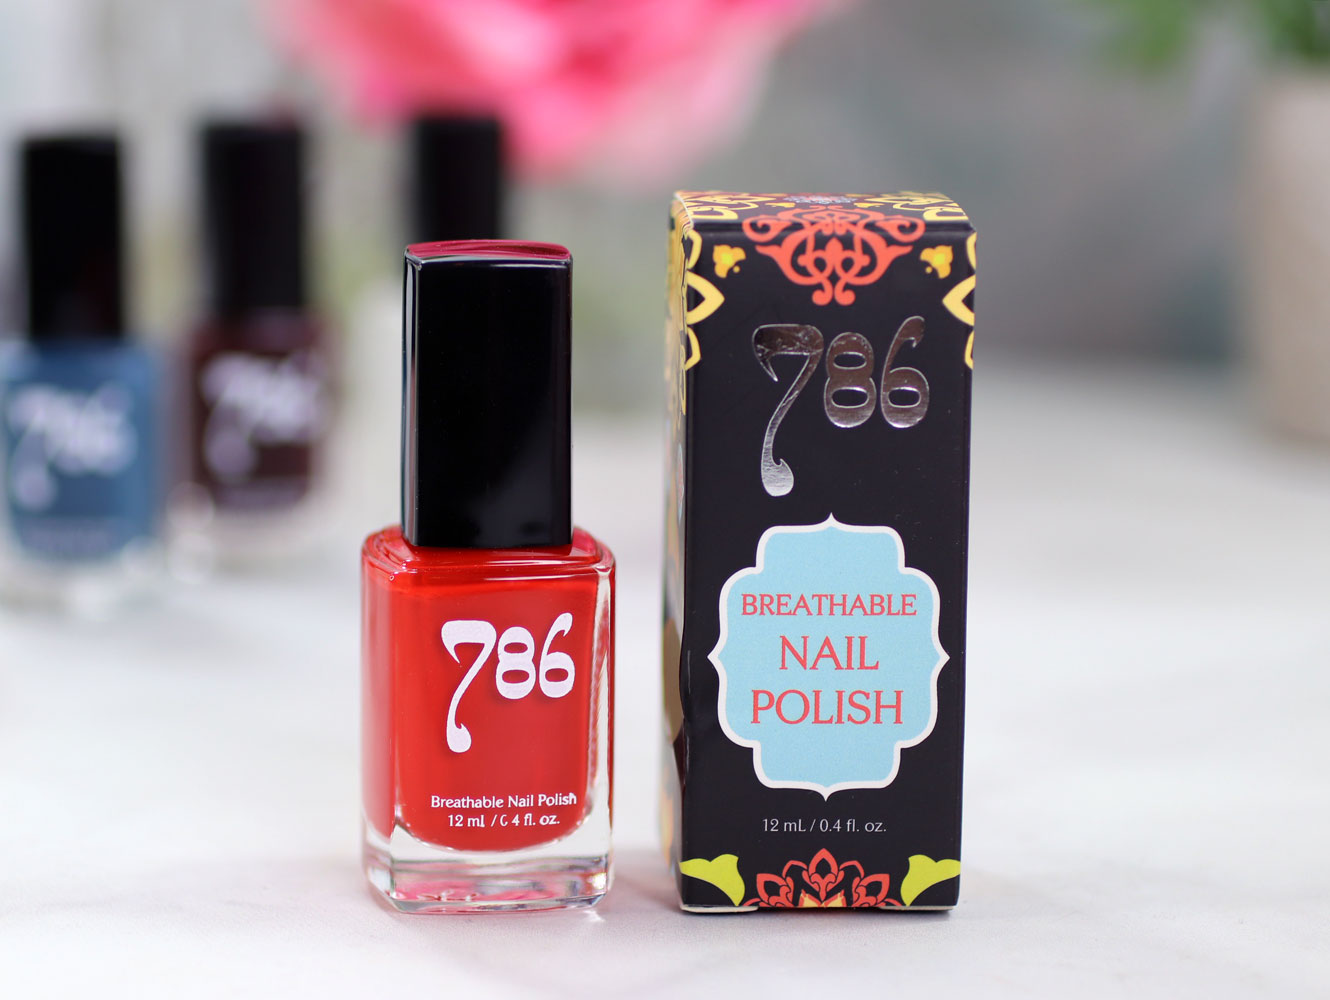 786 Cosmetics Breathable Cruelty Free and Vegan Nail Polish Review and Swatches - Marrakech